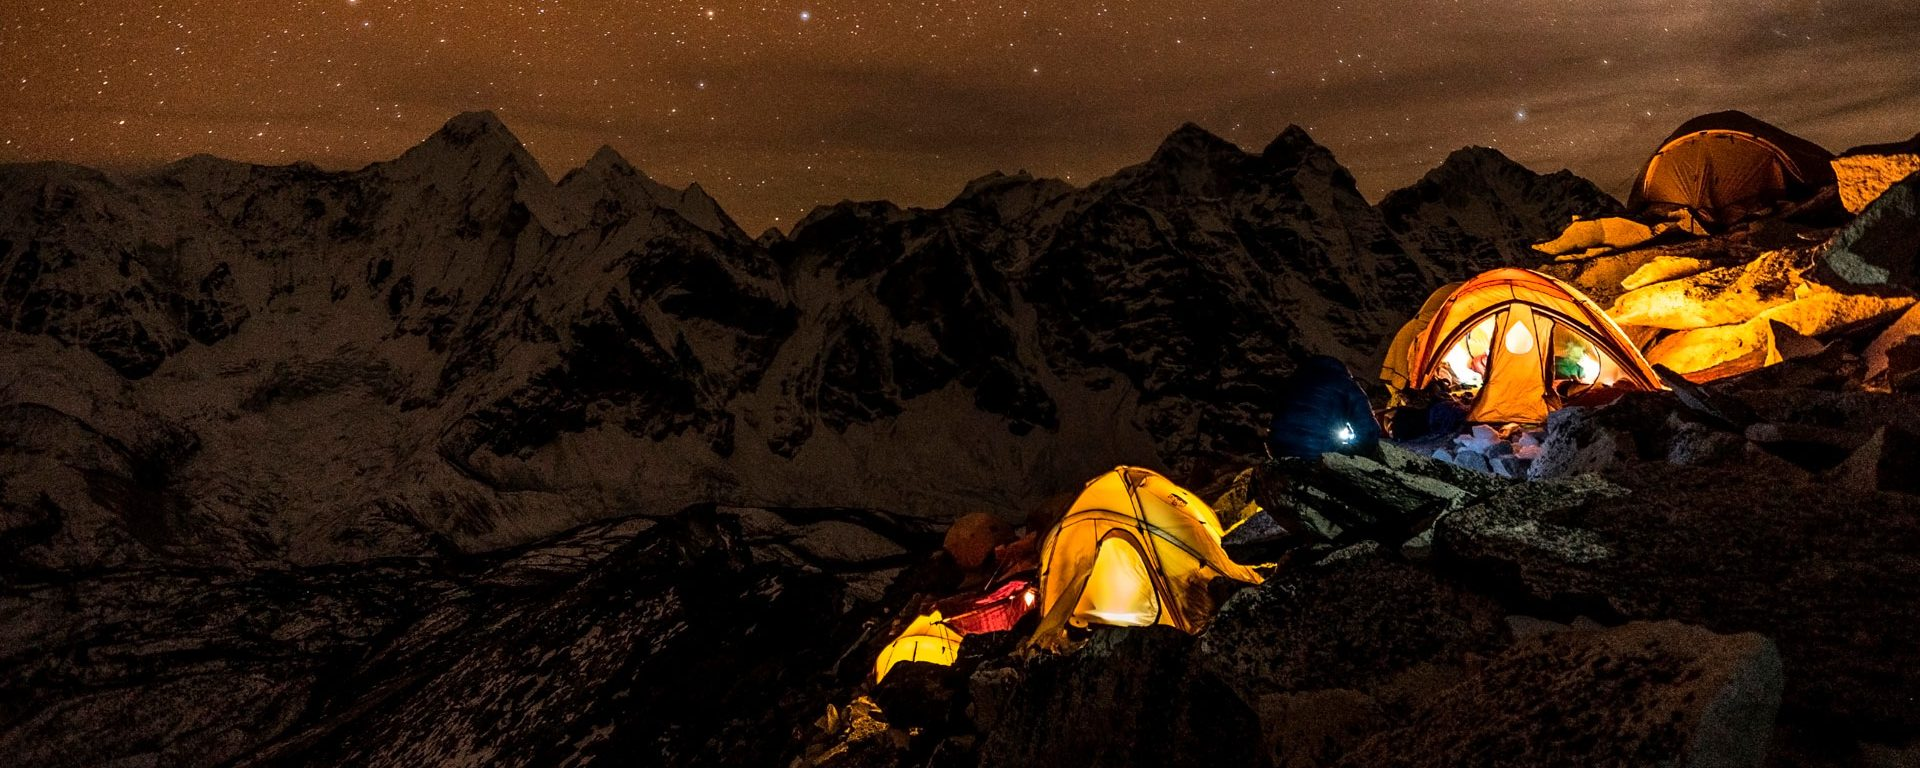 Trekking tents glowing against the night sky with mountains in the distance